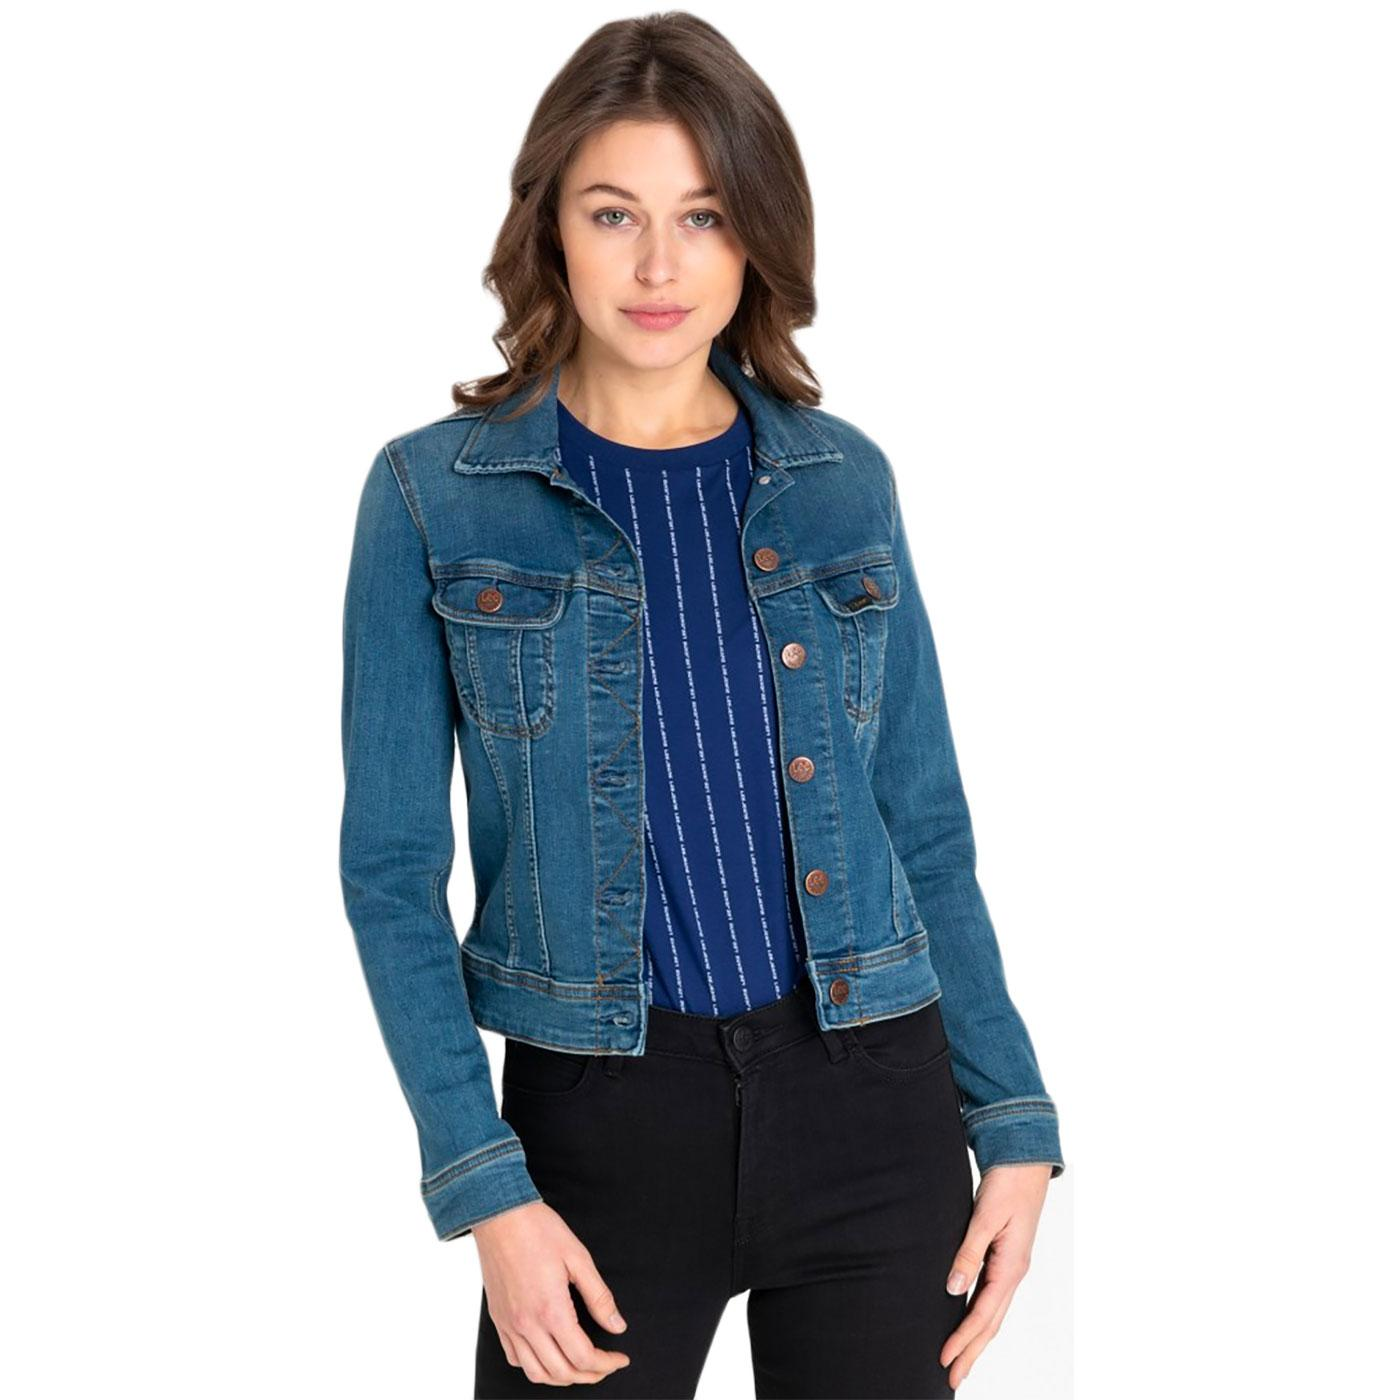 LEE JEANS Slim Rider Women's Retro Denim Jacket NN